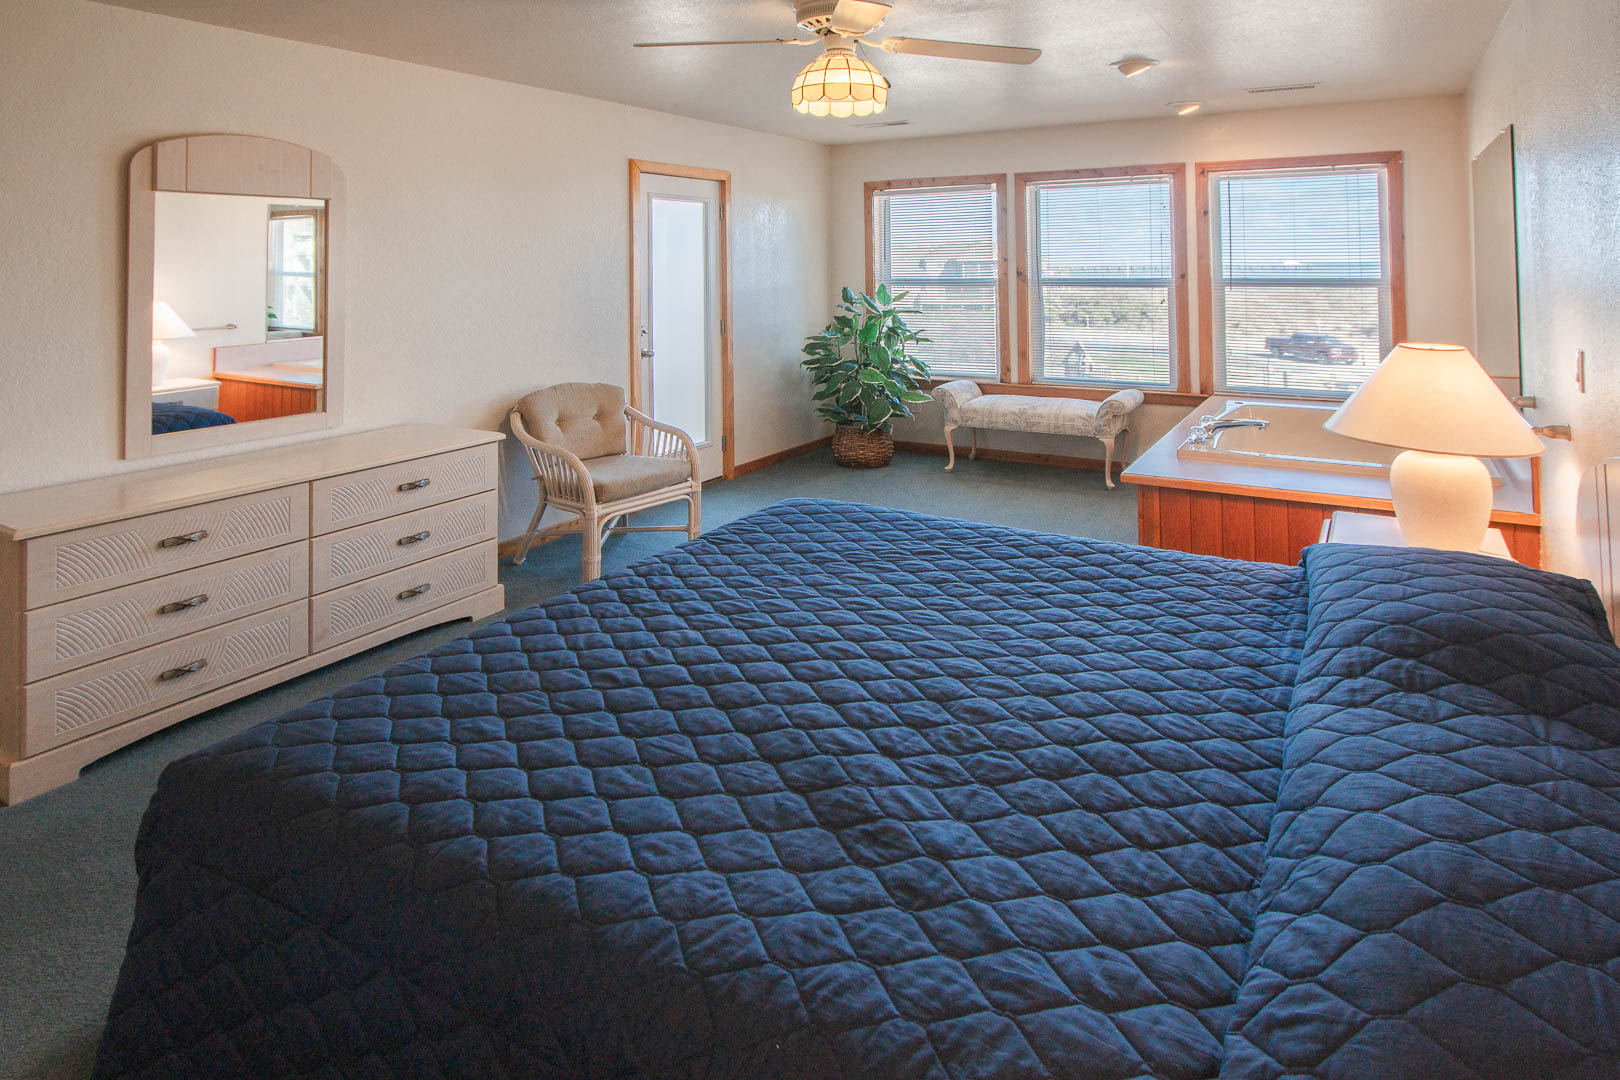 A spacious master bedroom at VRI's Barrier Island Station in North Carolina.